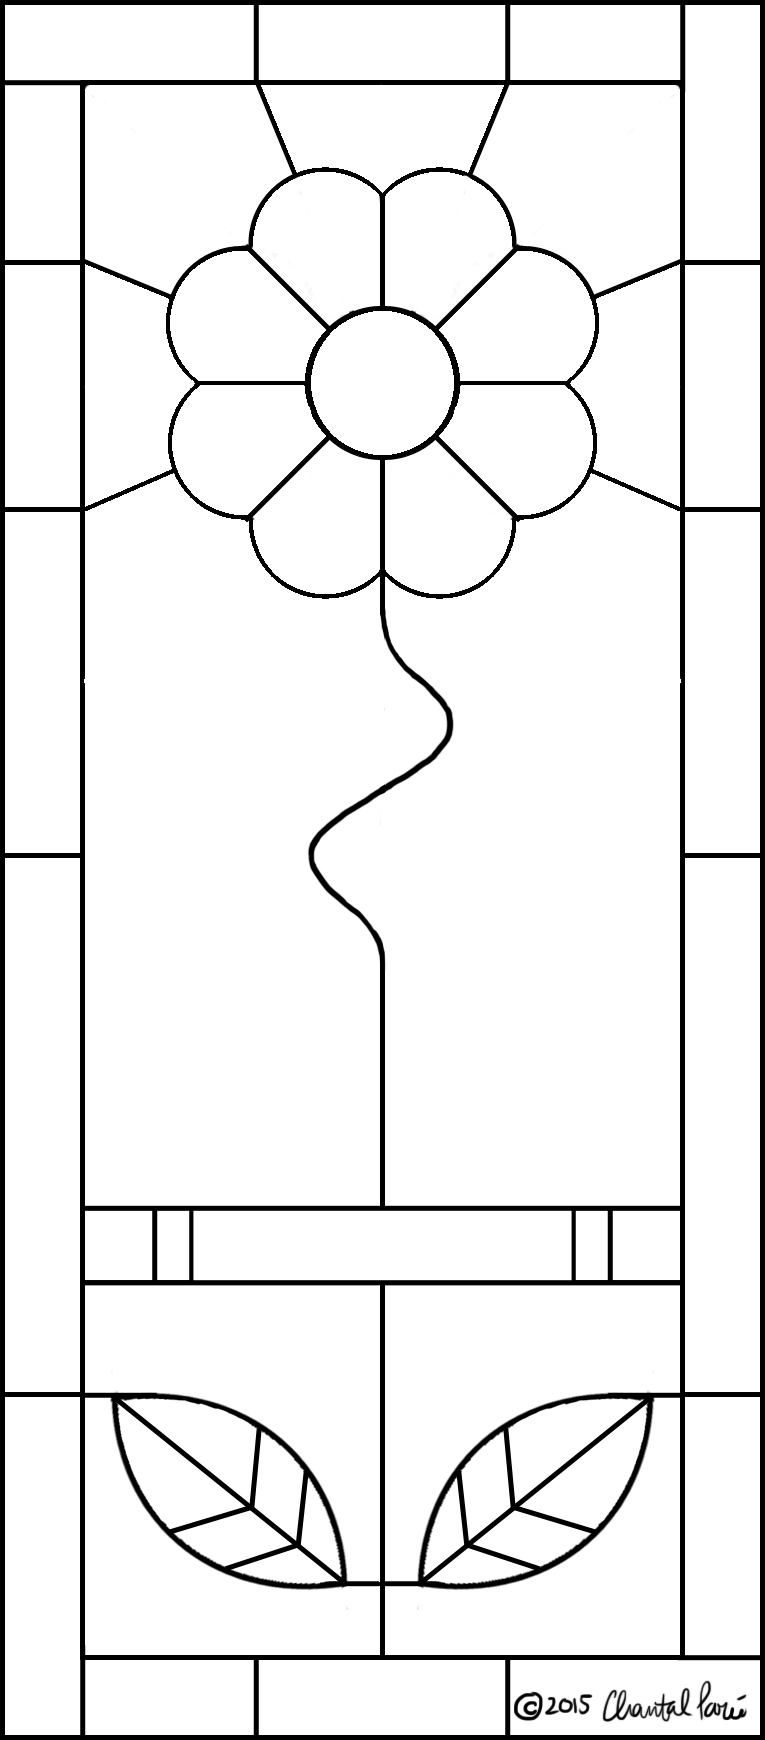 'Simple Flower' Stained Glass Pattern